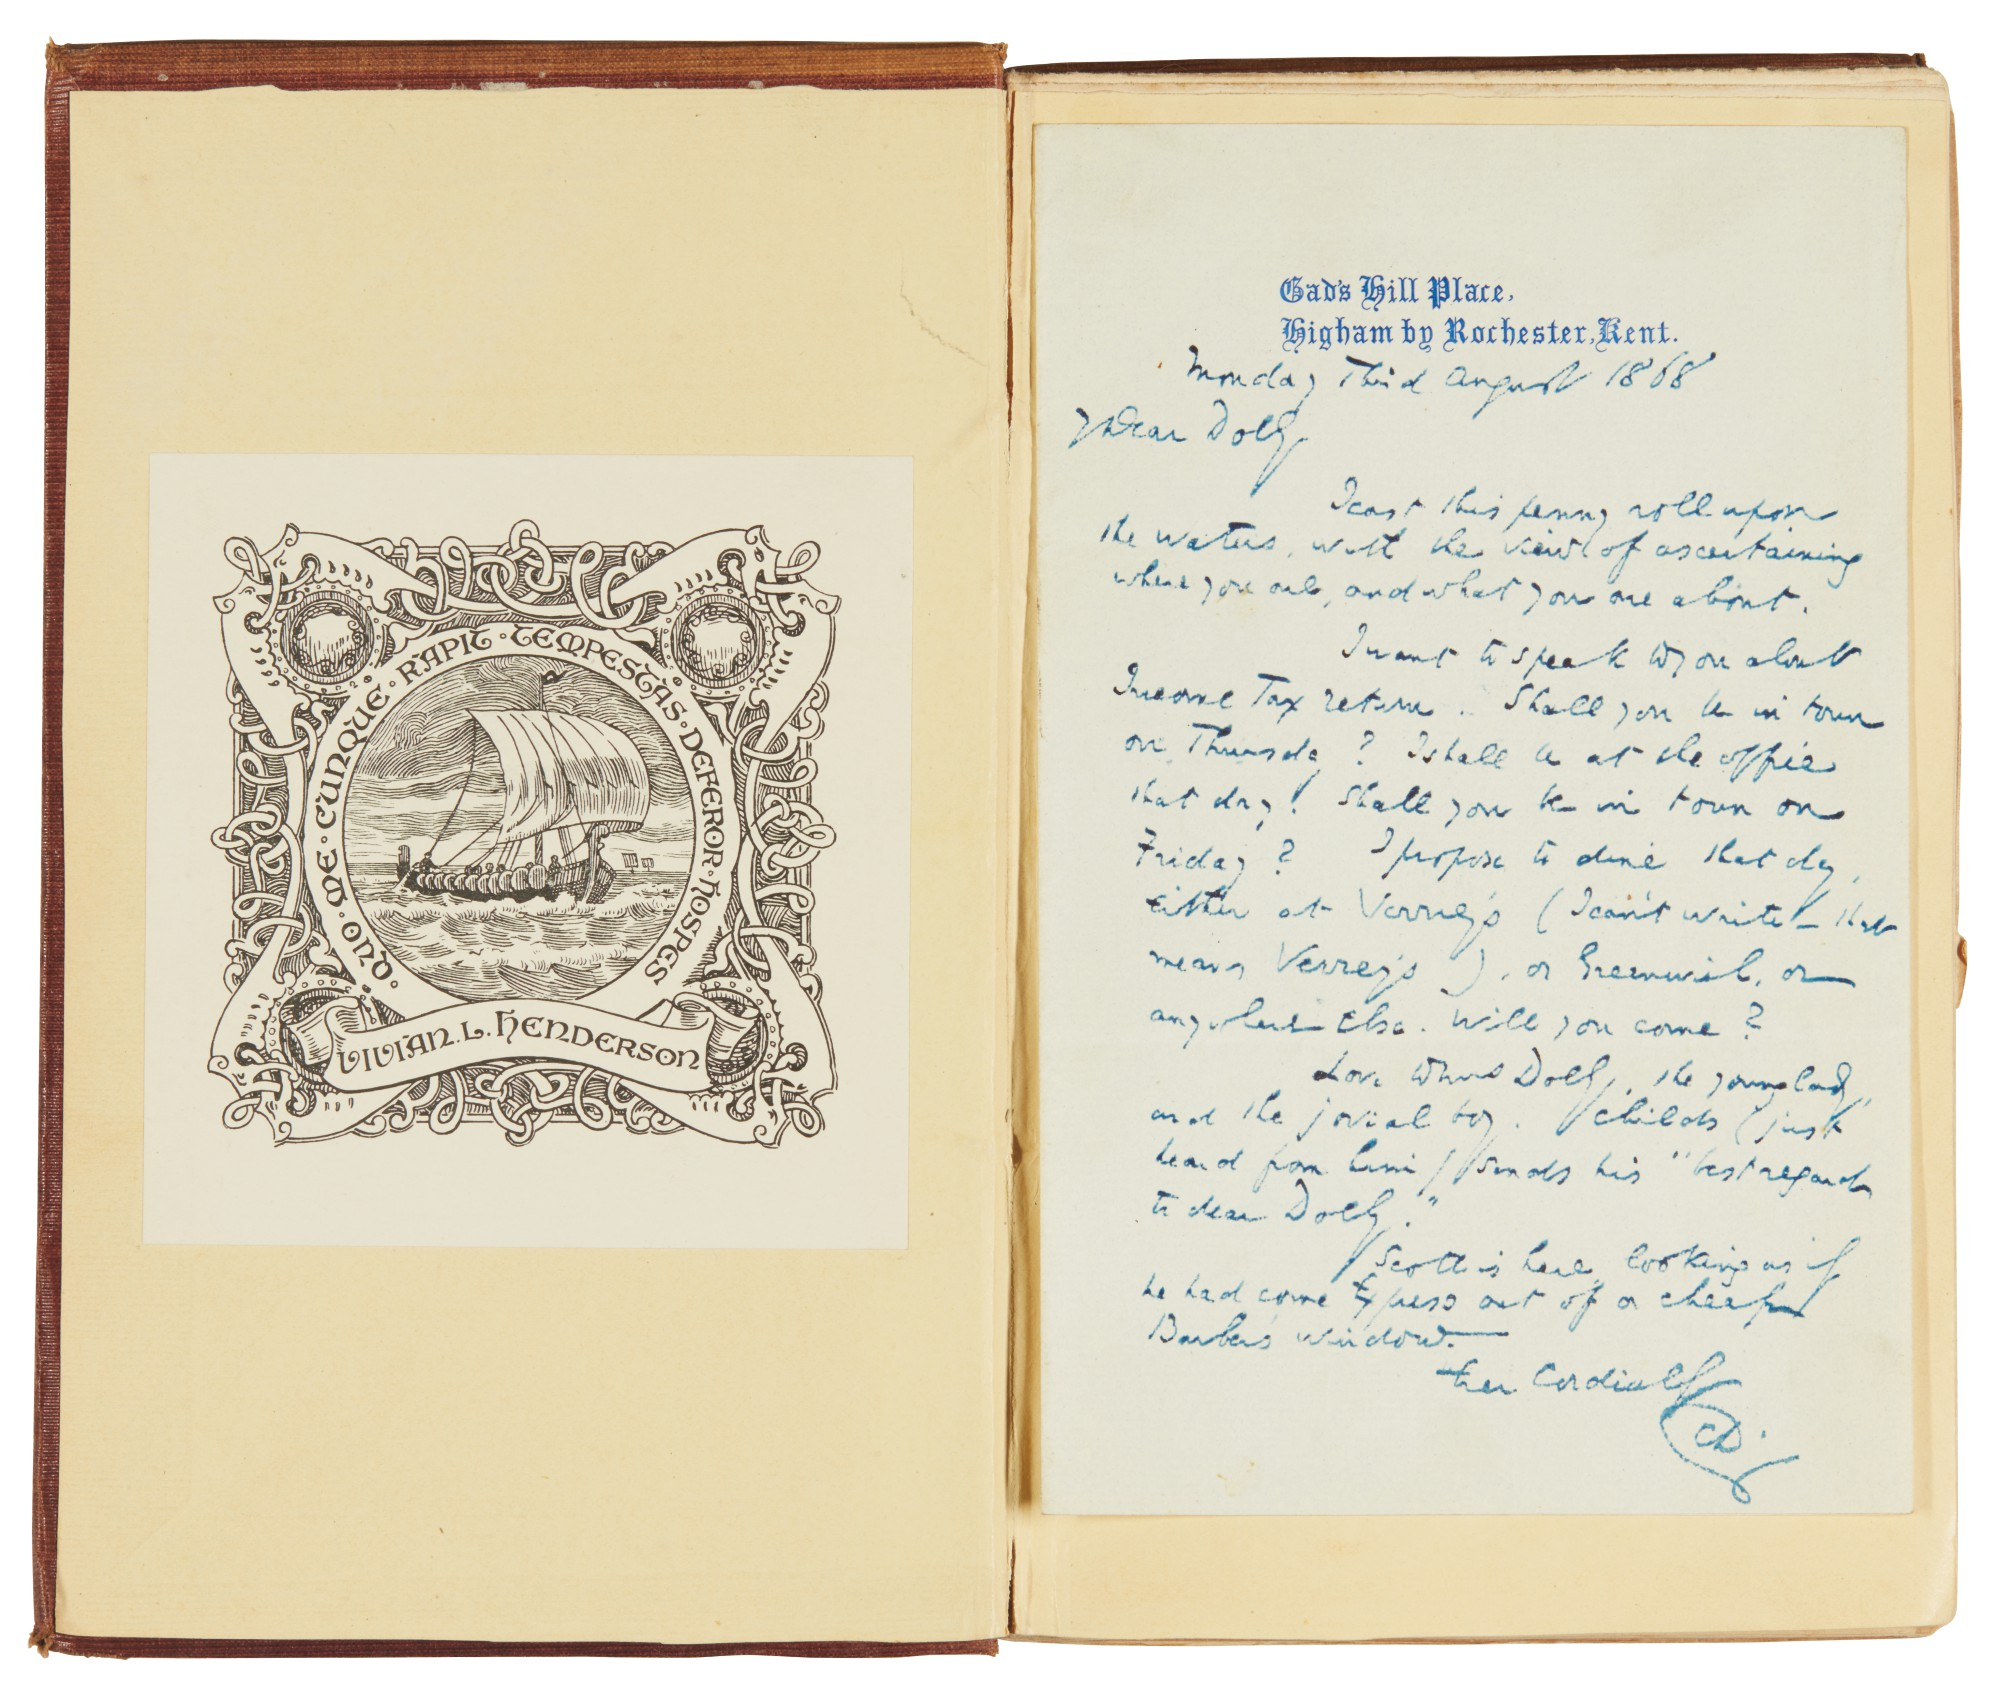 Dickens, Oliver Twist, 1838, first edition, first issue, with autograph letter signed by author